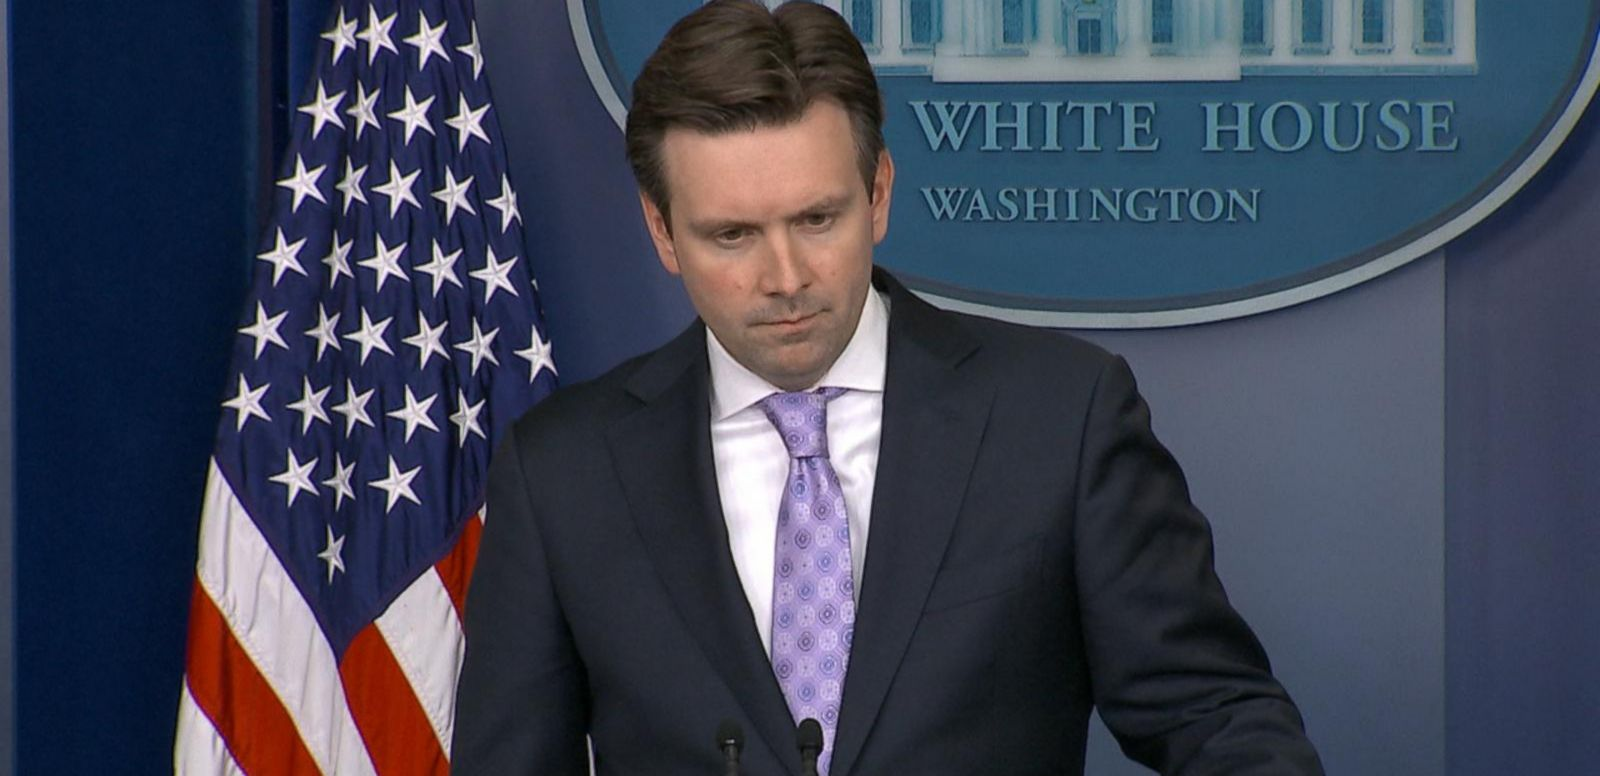 VIDEO: White House Defends Goal to Prevent Iran From Acquiring Nuclear Weapon